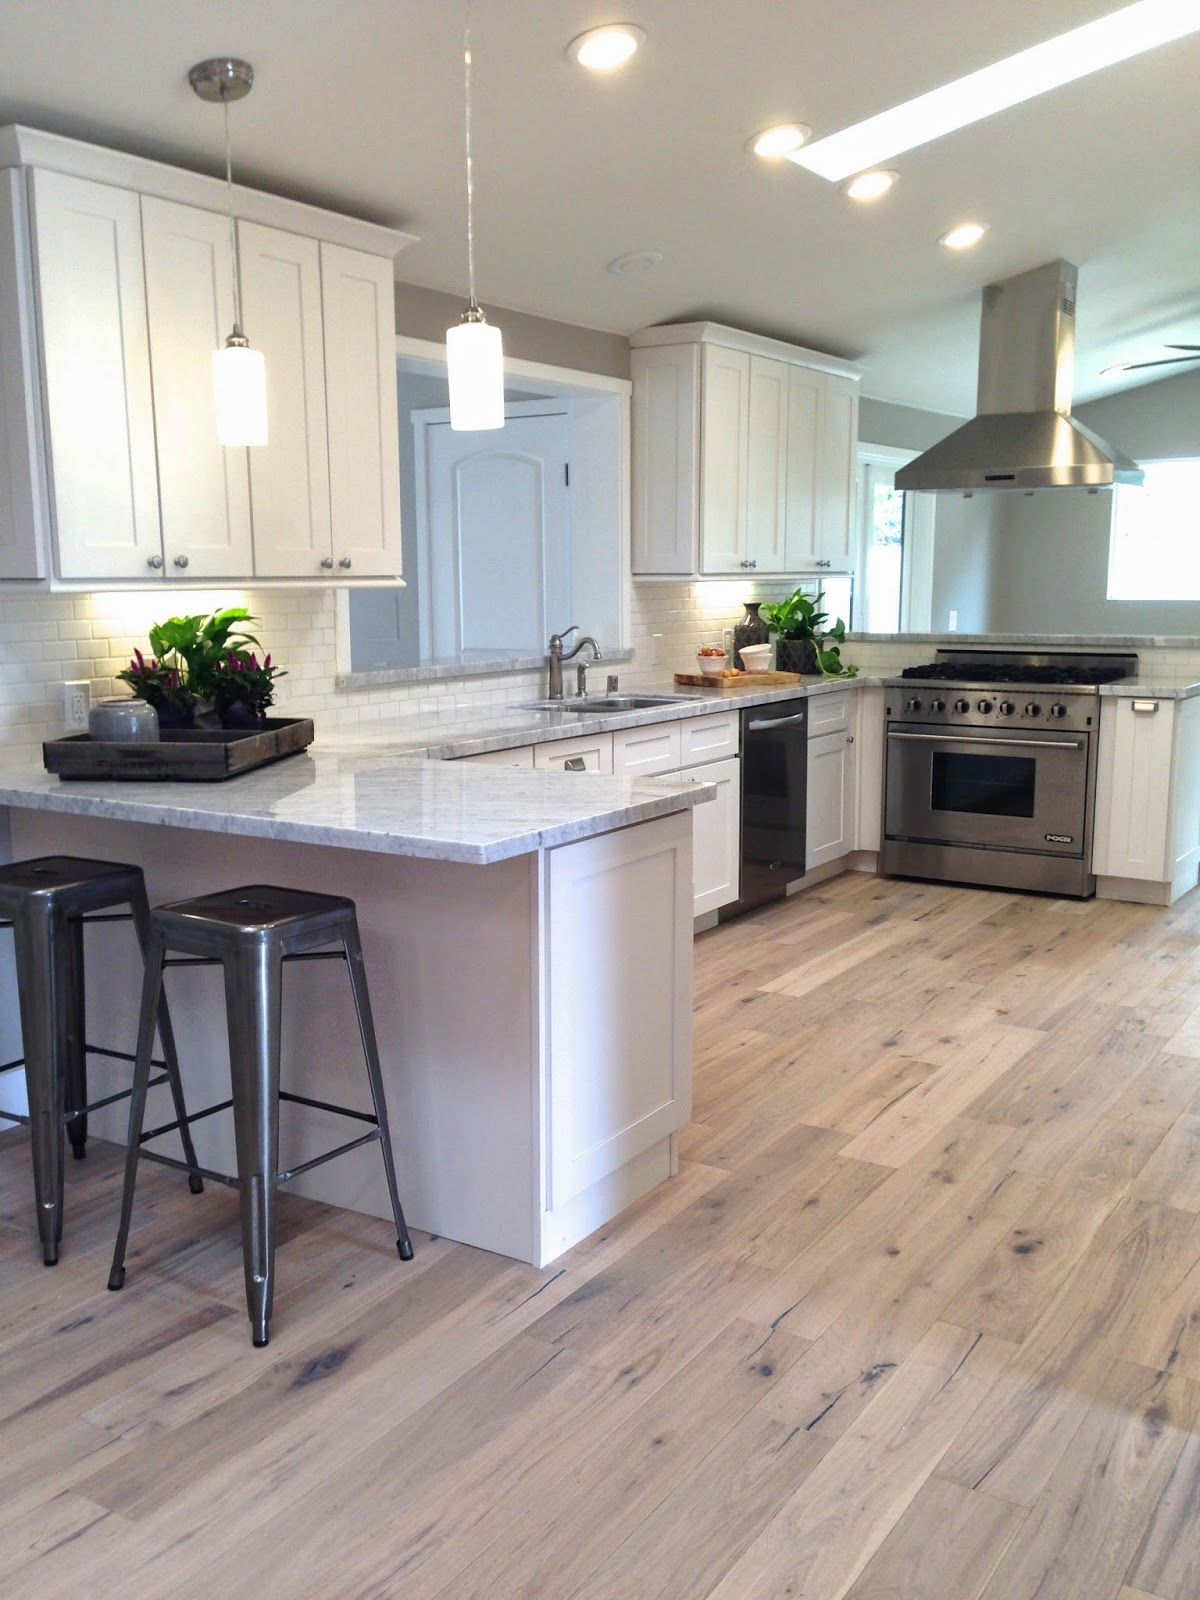 hardwood floors kitchen. I Like The Stain Color Of Floors\u2026 Hardwood Floors Kitchen